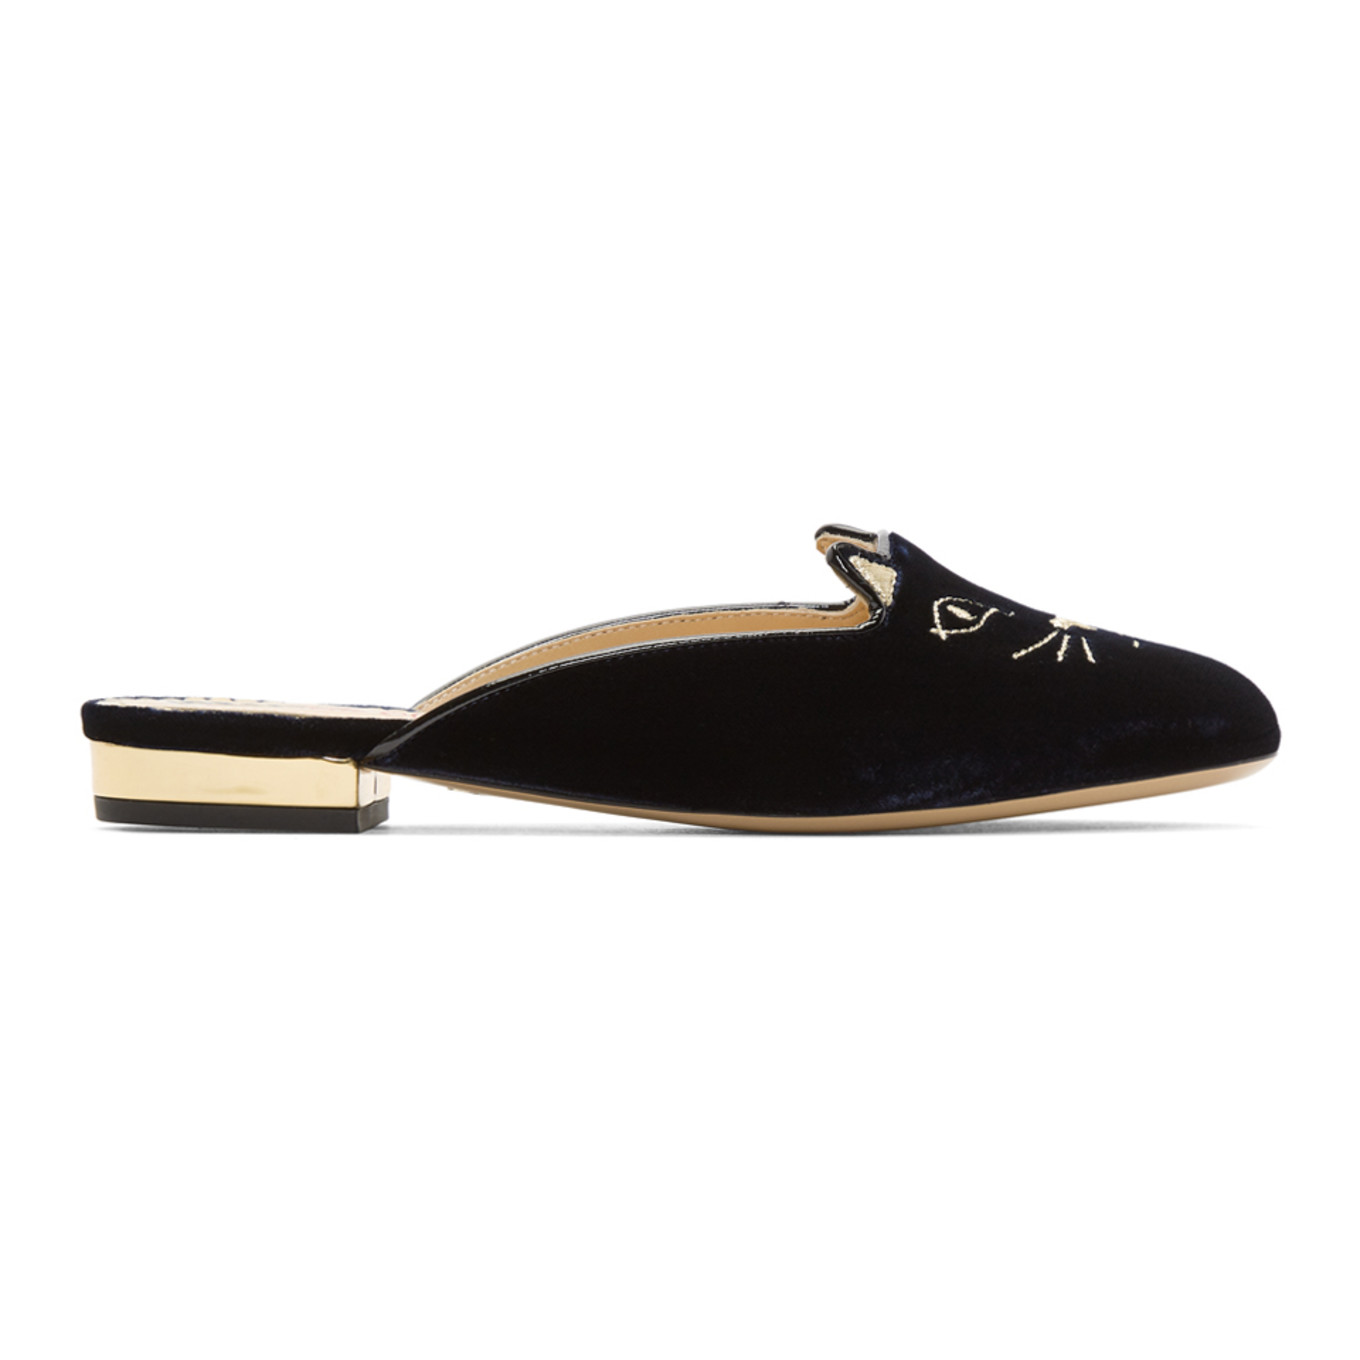 Navy Velvet Kitty Slippers by Charlotte Olympia